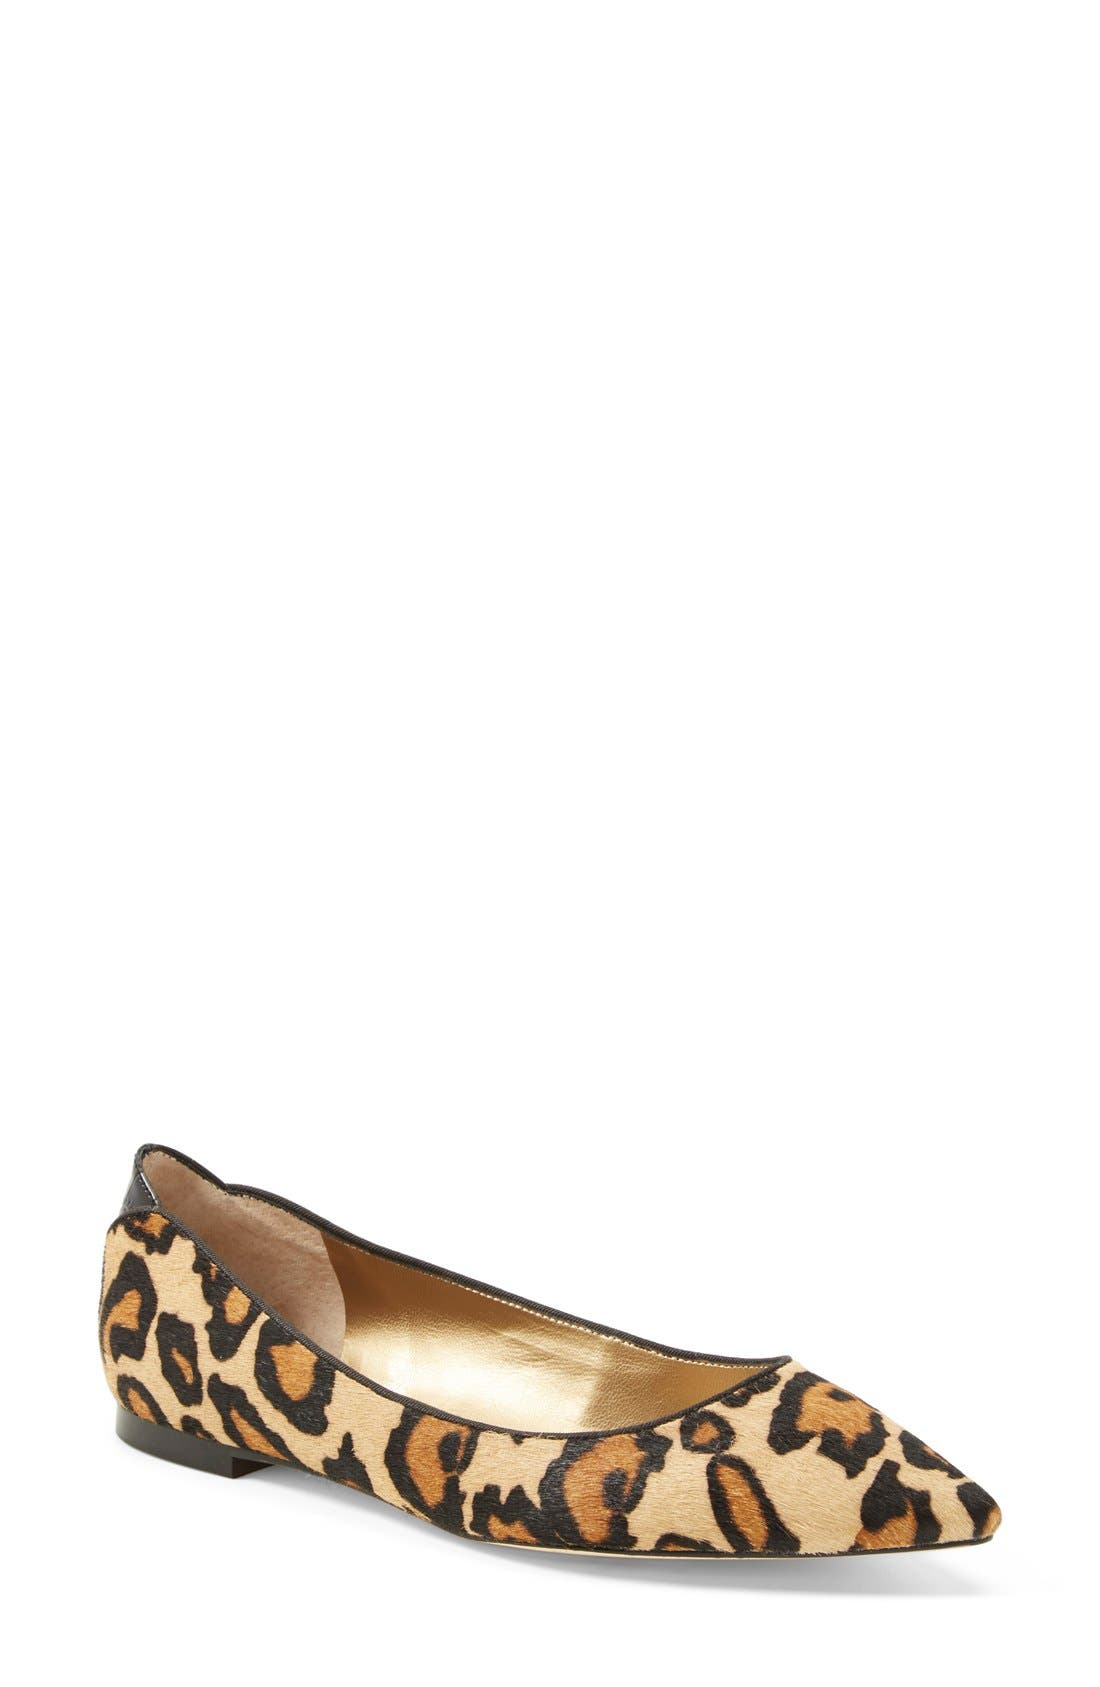 Alternate Image 1 Selected - Sam Edelman 'Rae' Pointy Toe Ballet Flat (Women)